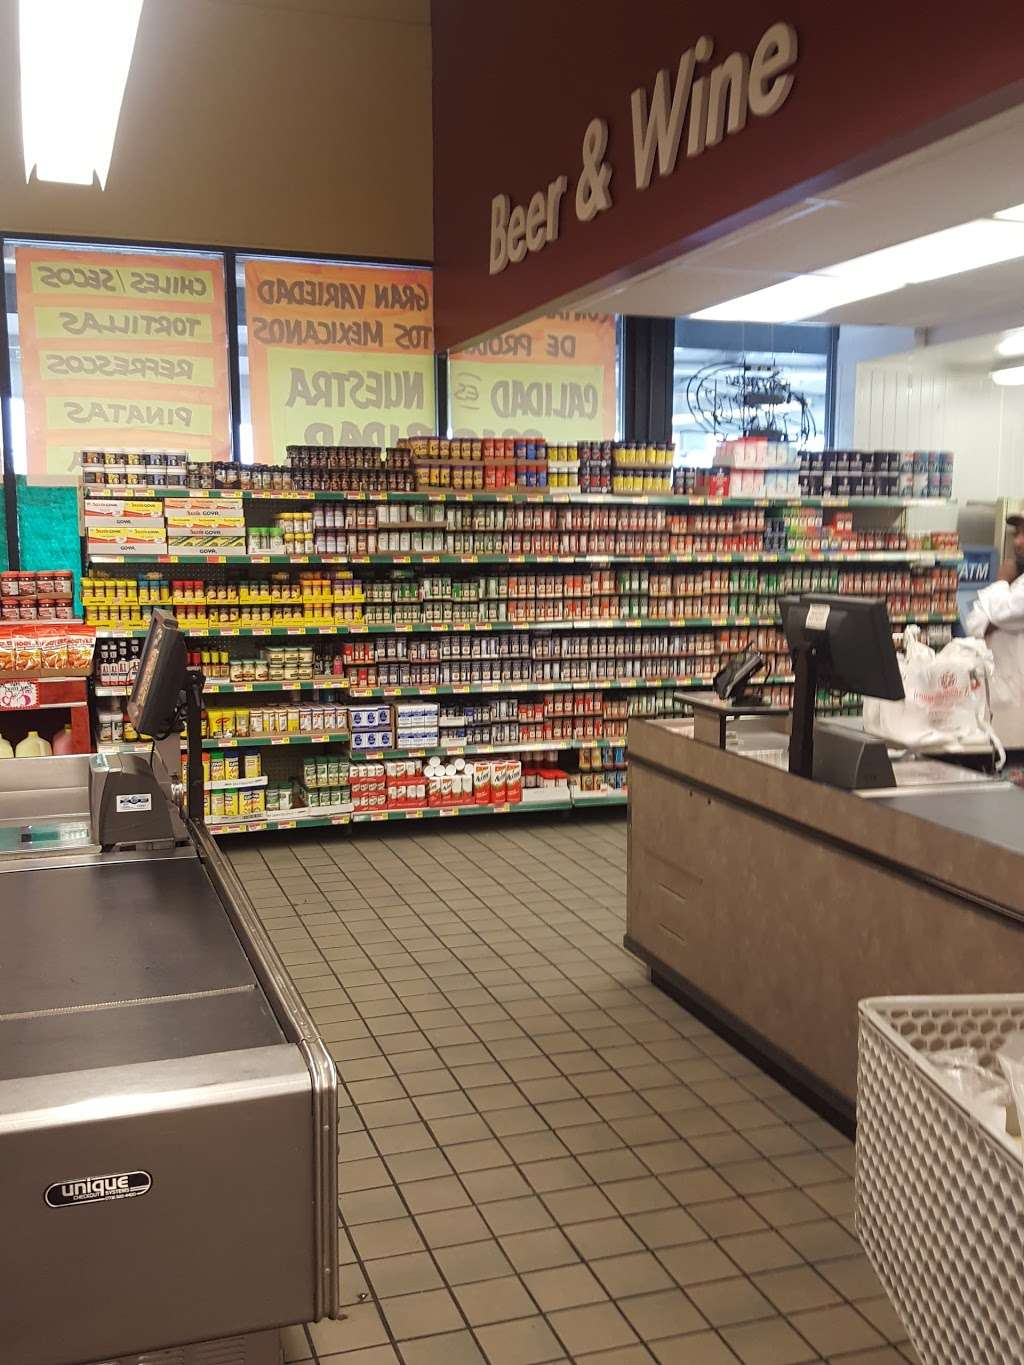 Dixmoor Market - store    Photo 9 of 10   Address: 14635 S Western Ave, Dixmoor, IL 60426, USA   Phone: (708) 489-1111